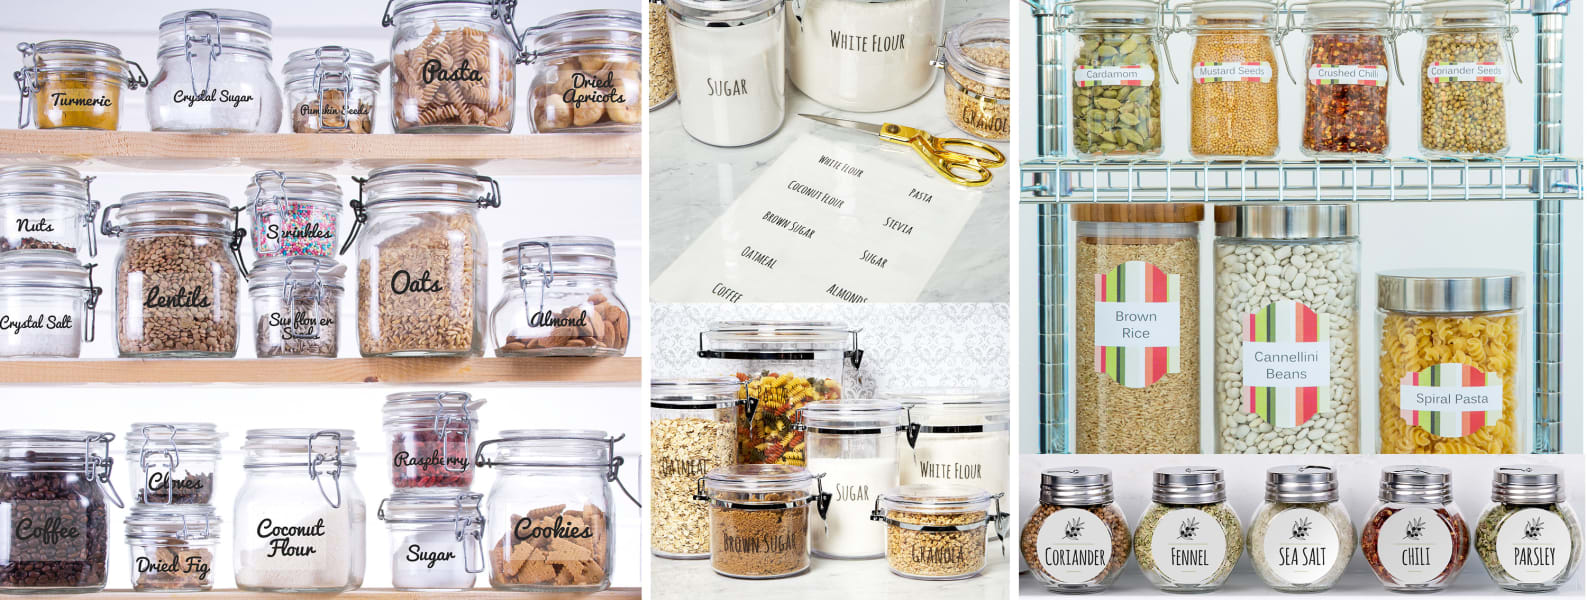 7 Essential Pantry Organization Ideas For The Insta Worthy Kitchen Of Your Dreams Avery Com